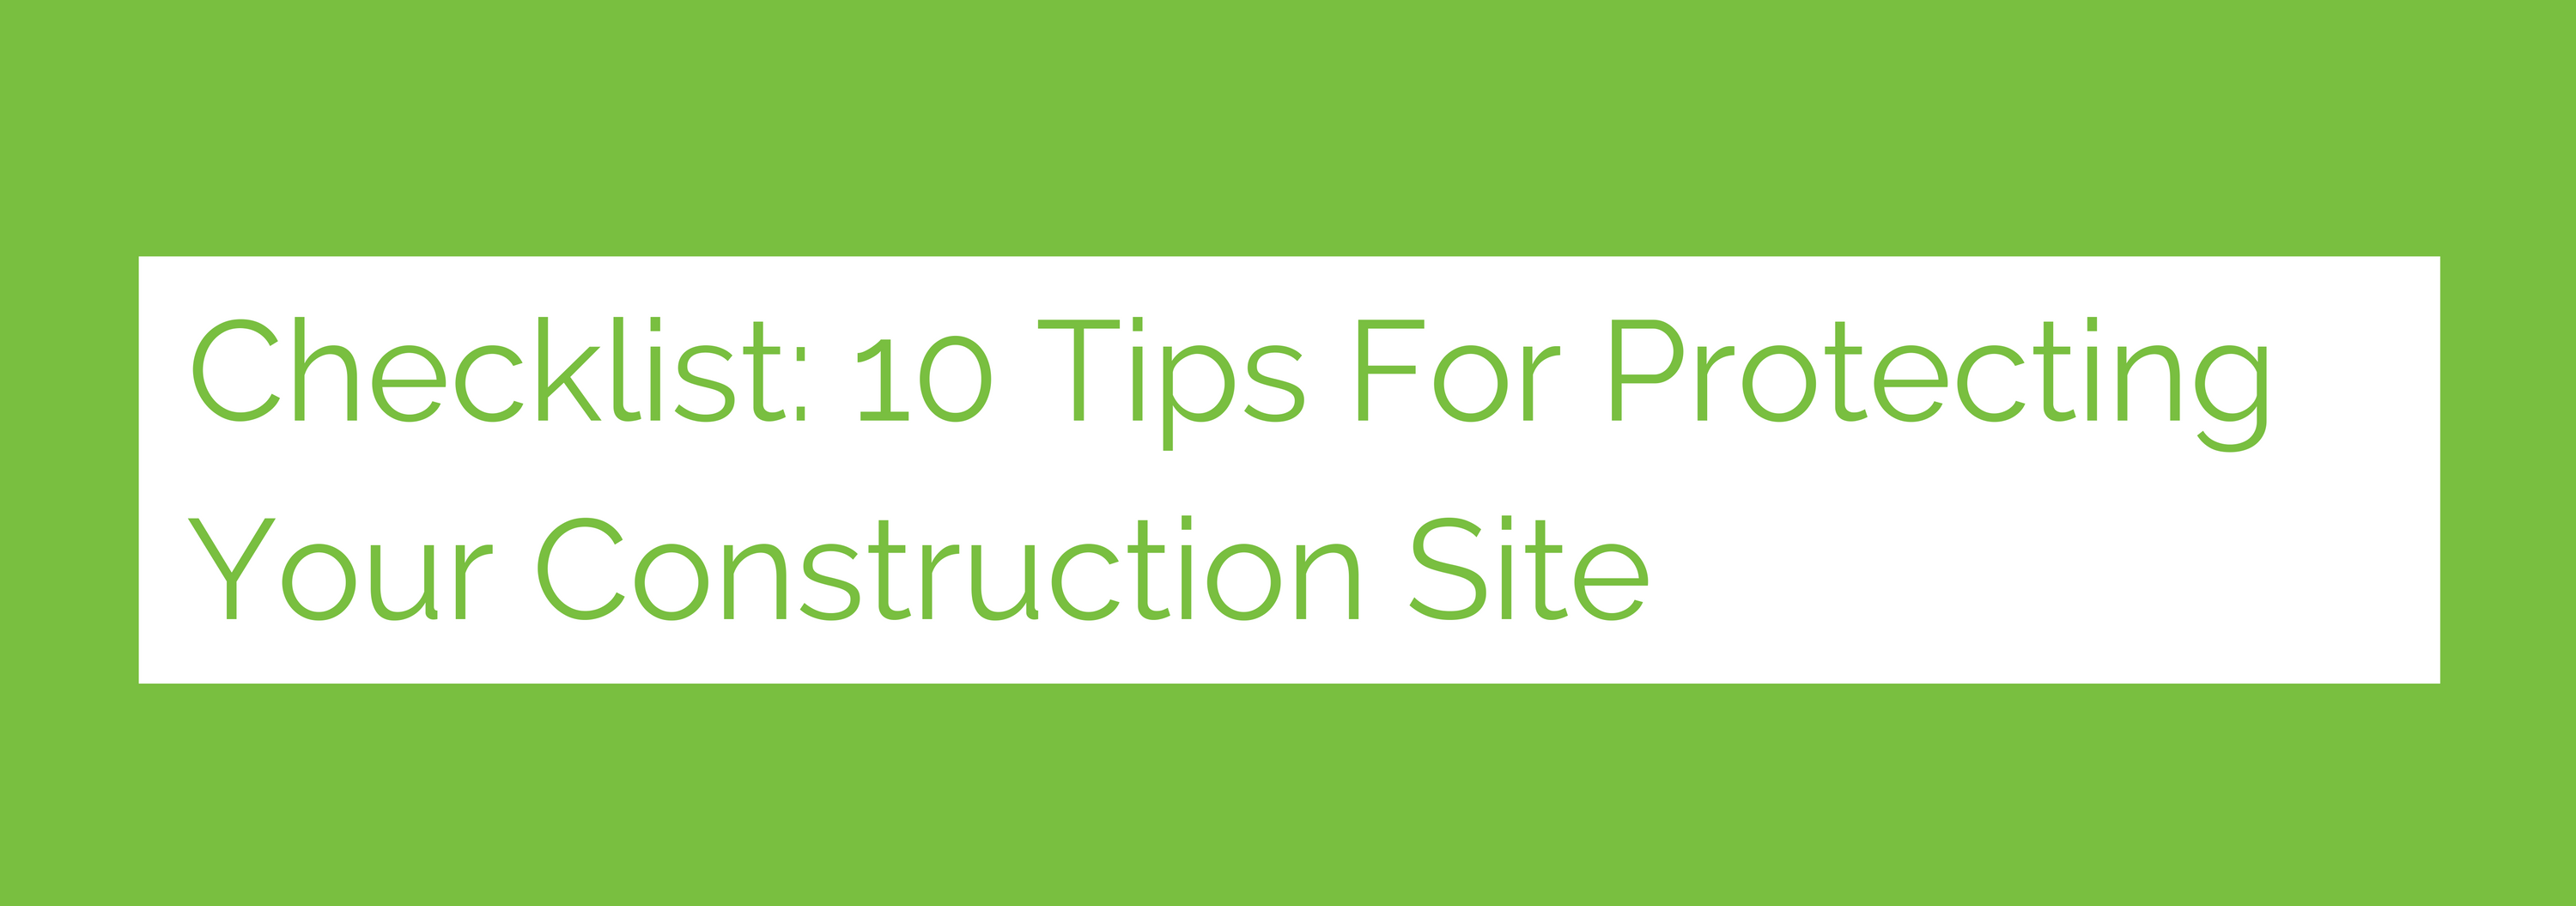 Checklist_ 10 Tips For Protecting Your Construction Site __ Banner Image.png